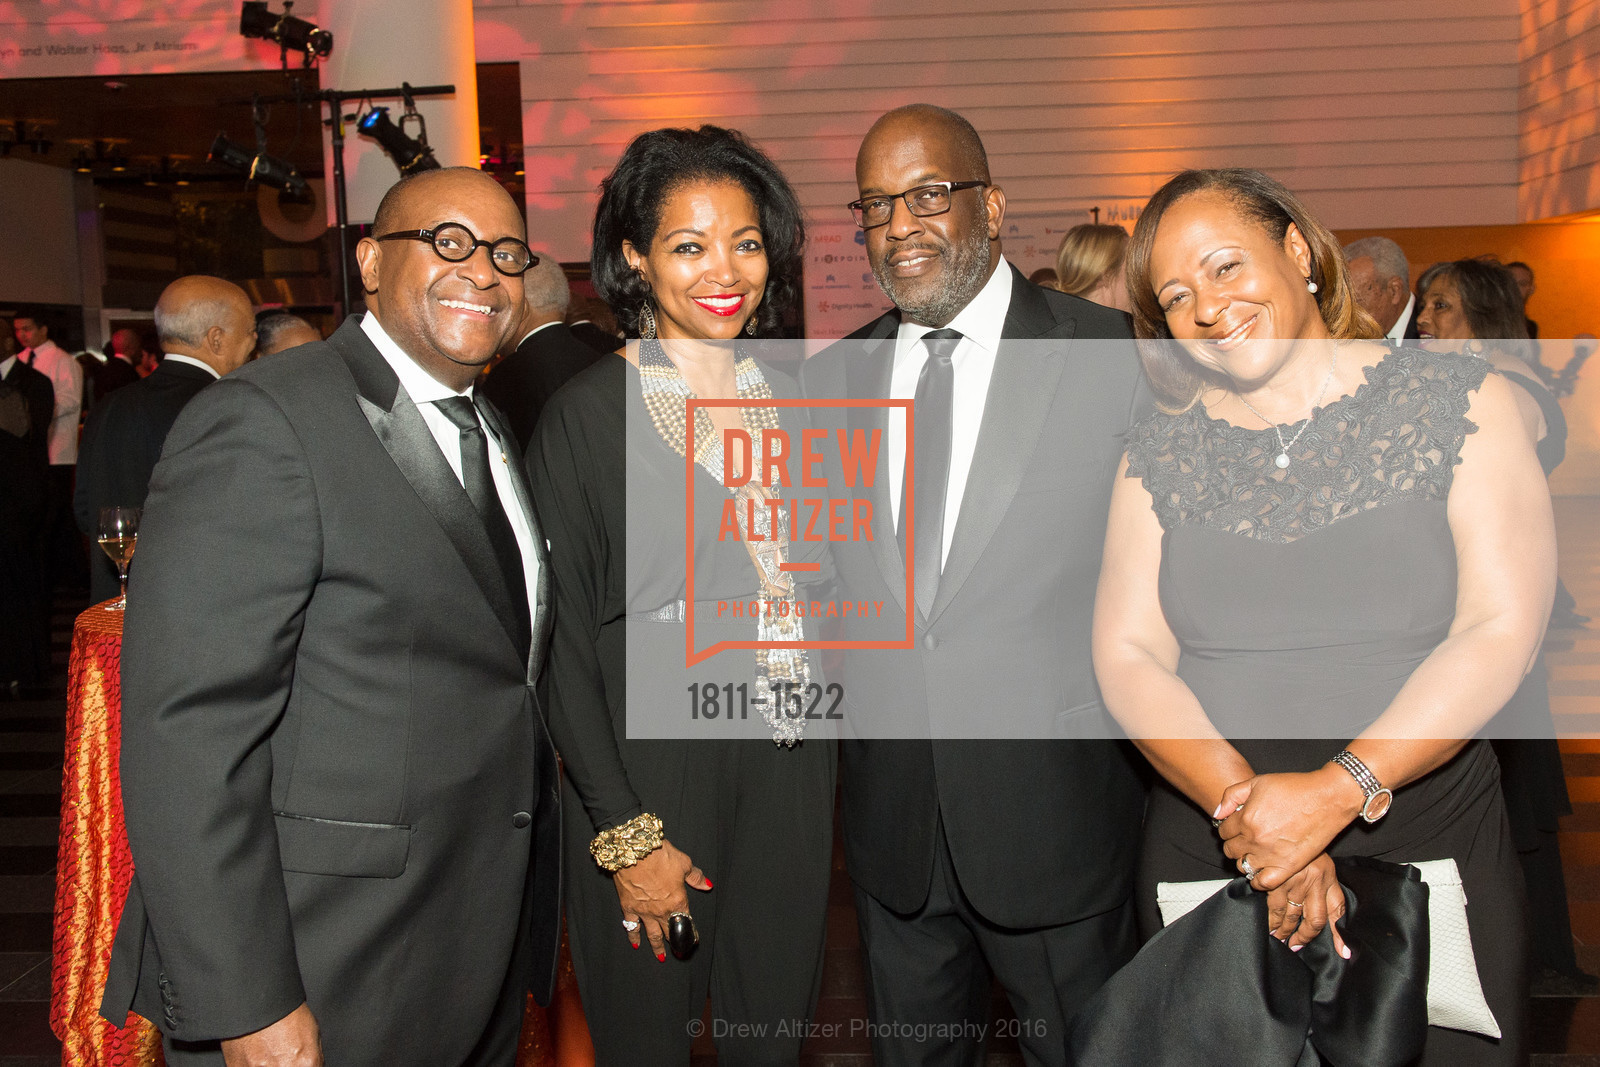 Michael Washington, Denise Bradley Tyson, Bernard Tyson, Stasia Washington, Photo #1811-1522